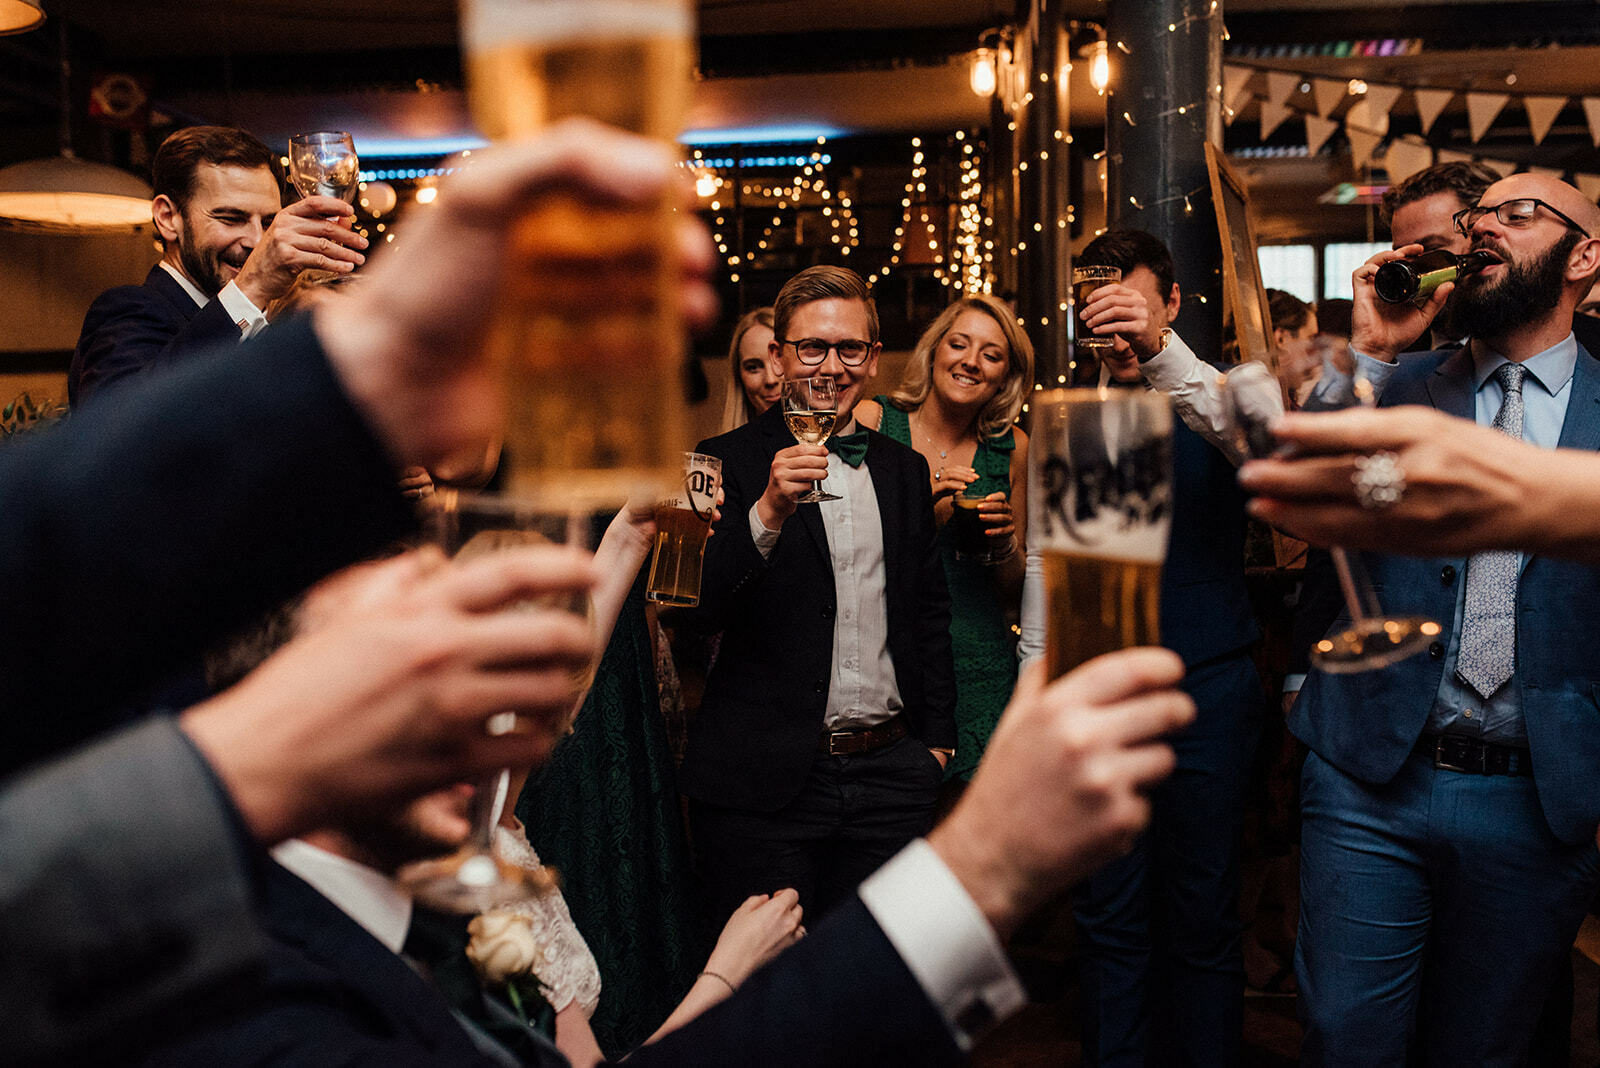 Guests all raise their glasses in celebration at a wedding in The Depot N7